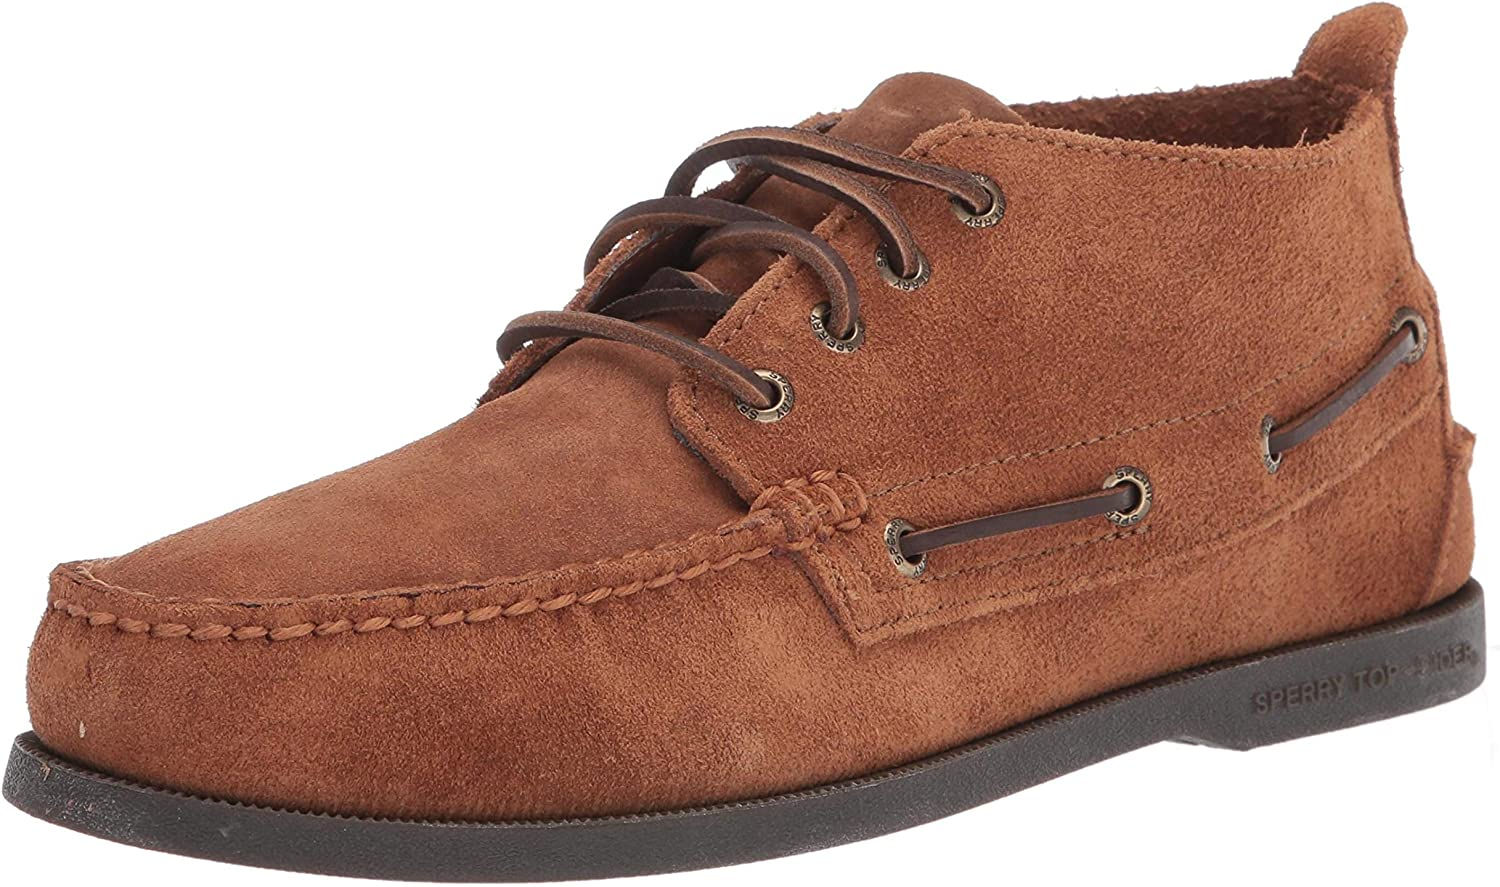 Sperry Mens Max 72% OFF Manufacturer direct delivery Authentic Chukka Original